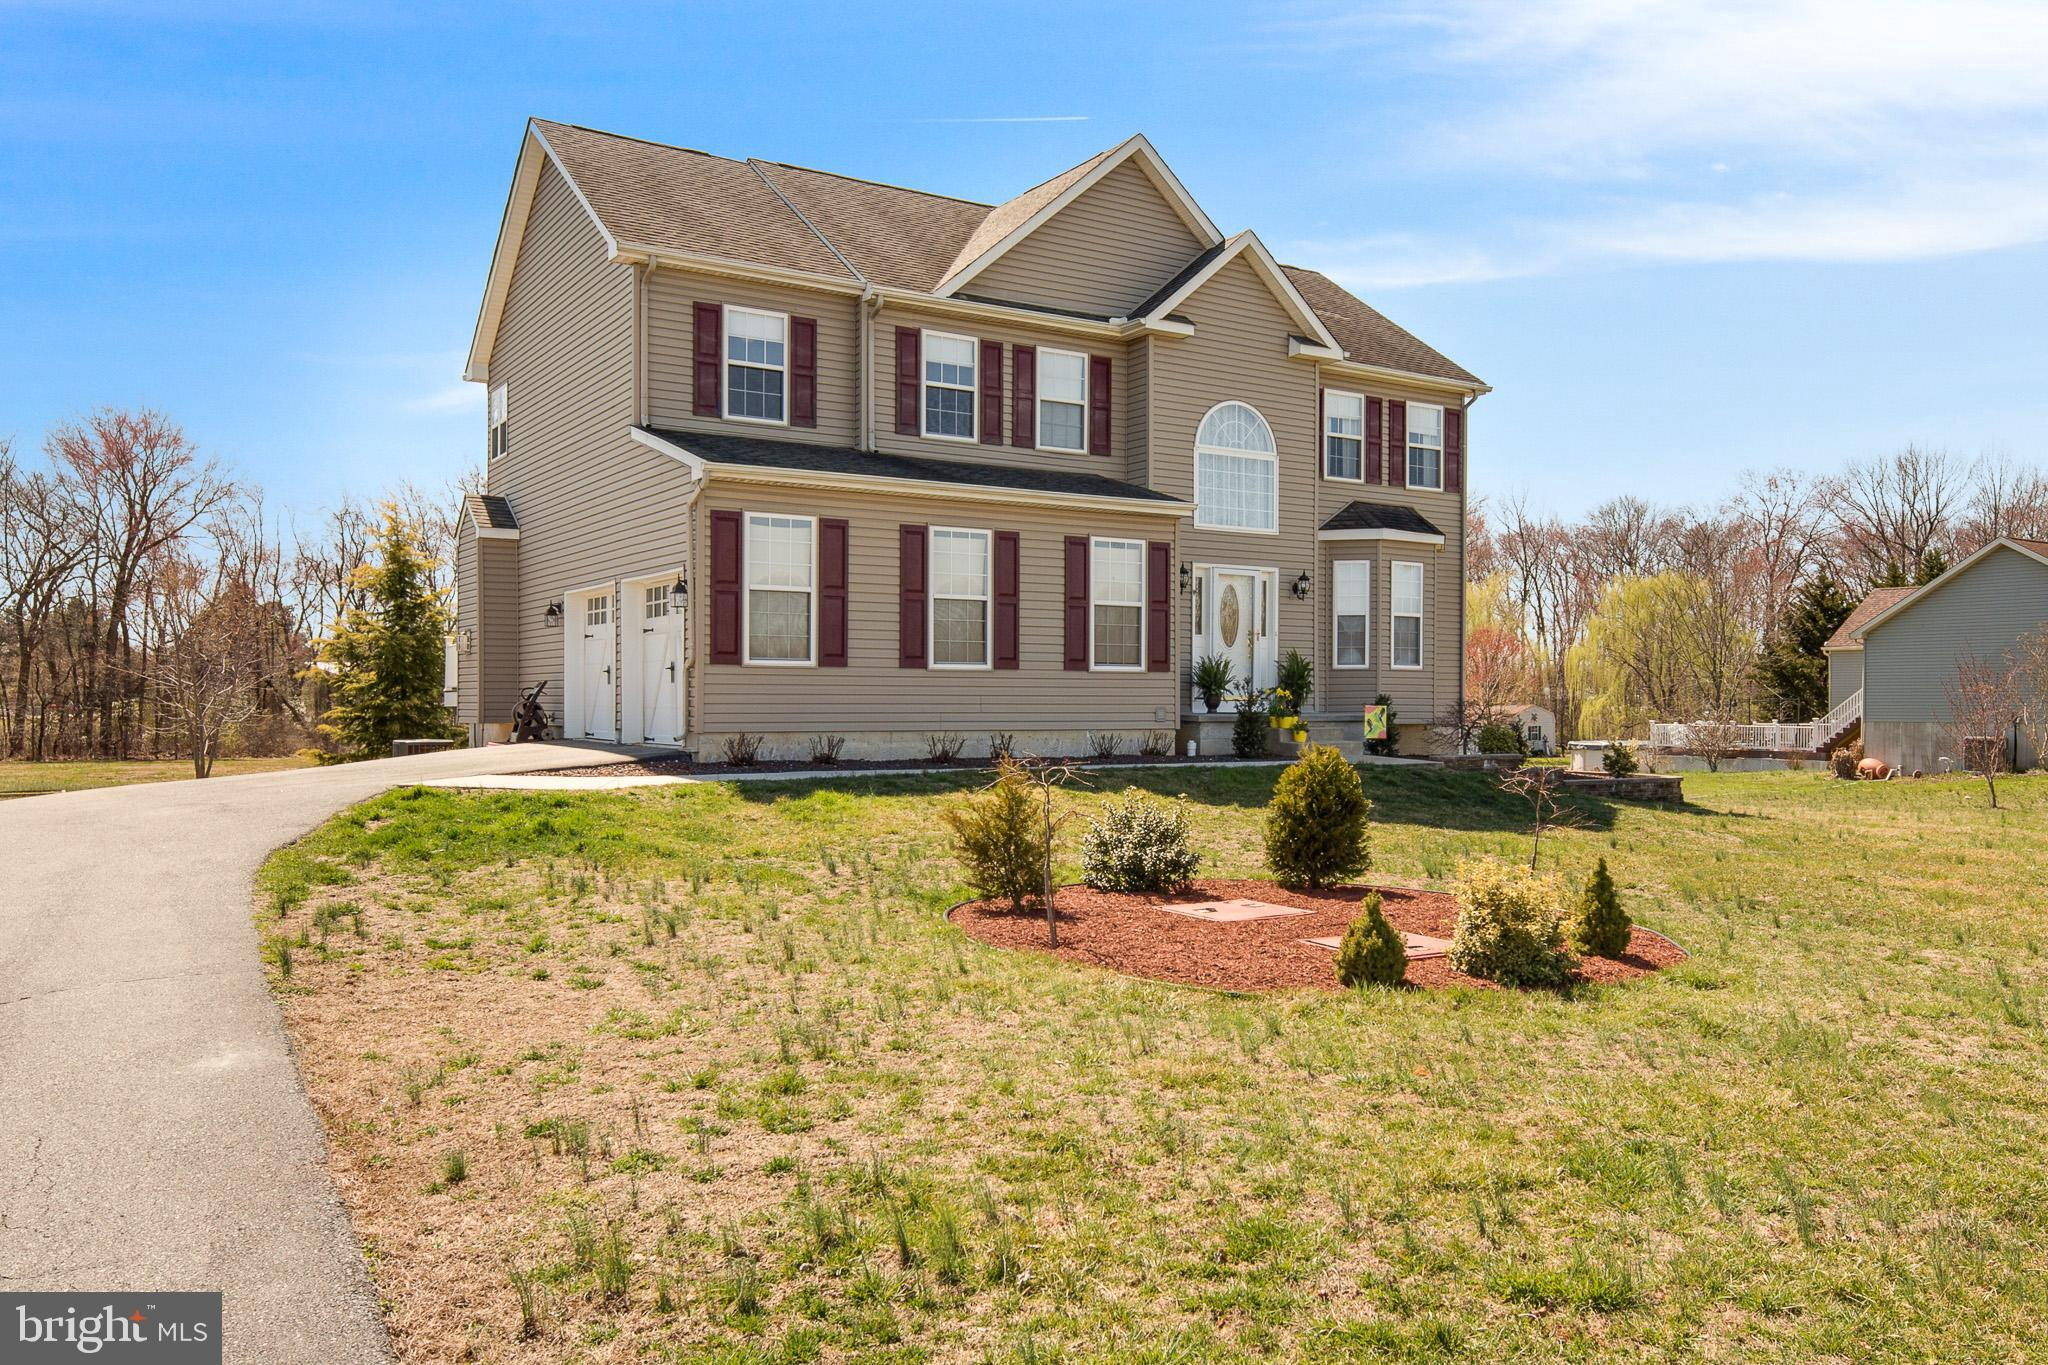 Welcome to 308 Christine Lane. This two story colonial is beautifully maintained with 2,550 sf of living space situated on 1.88 acres in the desirable sub-division of Claybourne. Entering the foyer, you will notice the beautiful hardwood flooring and stunning staircase.  There is a formal living room and dining room that flows into the kitchen. The kitchen is spacious with plenty of cabinets including an island and desk area. There is a large slider, which opens onto the spacious trex deck, with steps to the back yard.   The kitchen has an open view into the family room with a gas fireplace, large windows and a view of the deck and back yard.  Upstairs, the Master Bedroom is on the left. This room has a vaulted ceiling, ceiling fan with light and a large closet.  The Master Bath is roomy, with a large corner jetted soaking tub, separate tiled shower and a double-bowl vanity with storage. There are three additional bedrooms and a full bath with tile flooring, double bowl vanity and a tub/shower combination. A full, unfinished walk-out basement gives you plenty of opportunity to customize and make it your own.  Many opportunities for outdoor living. Outside amenities include a fire pit, shed with garage door entry and a small creek that runs behind the property.